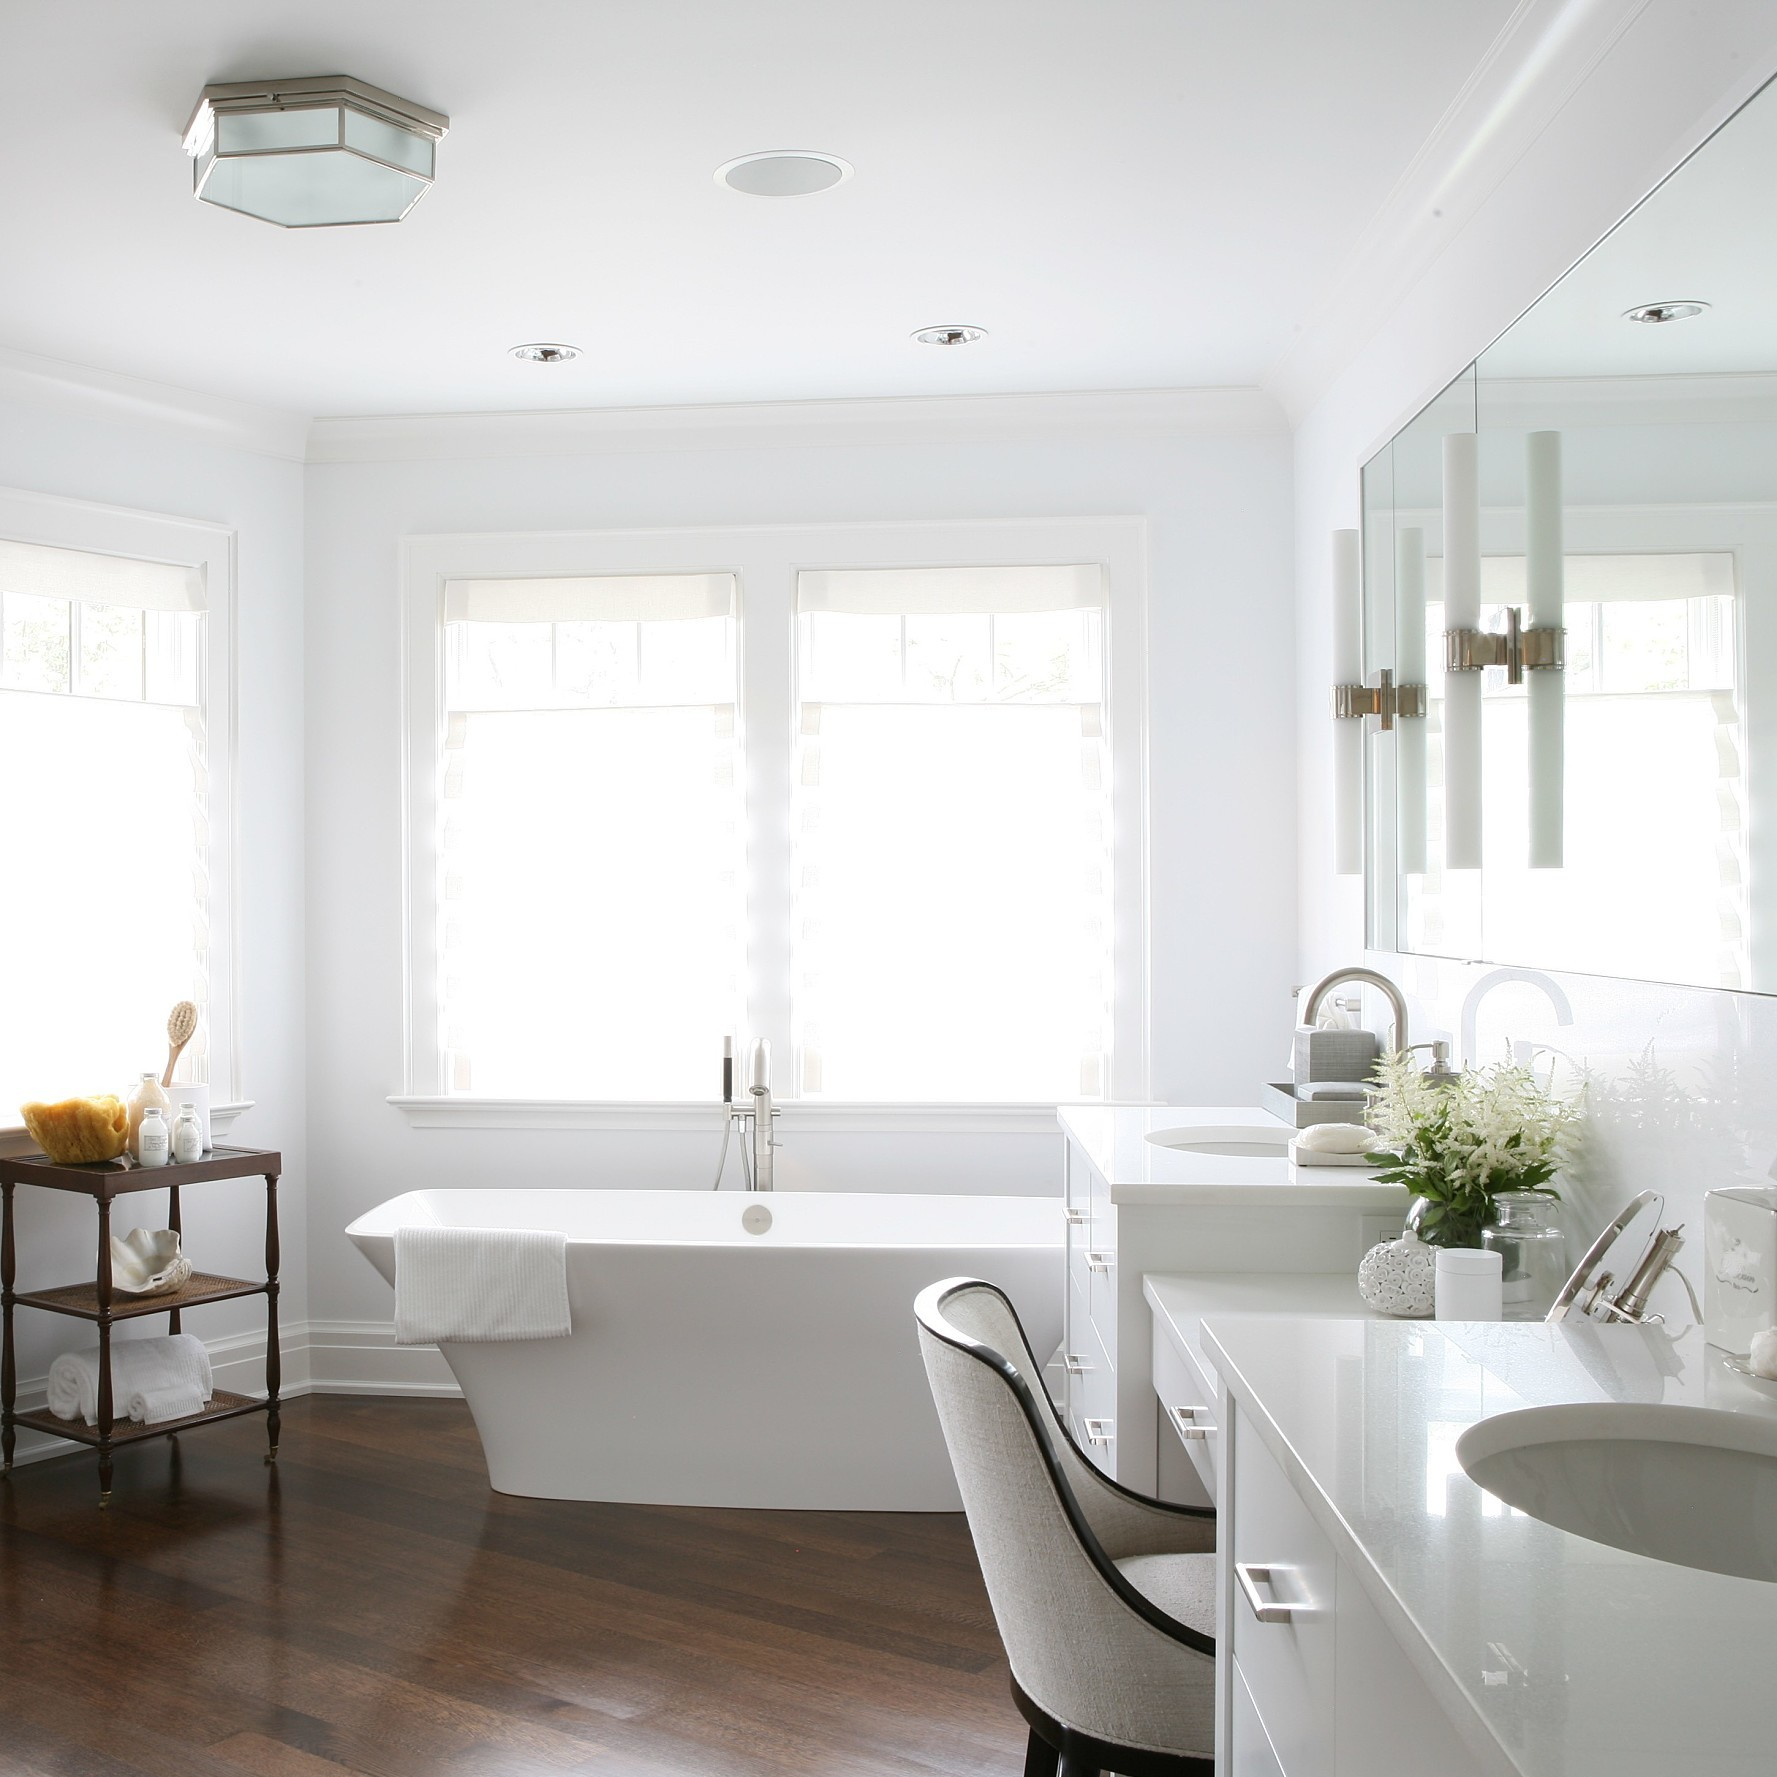 clean-white-bath-1016.jpg (skyword:349561)